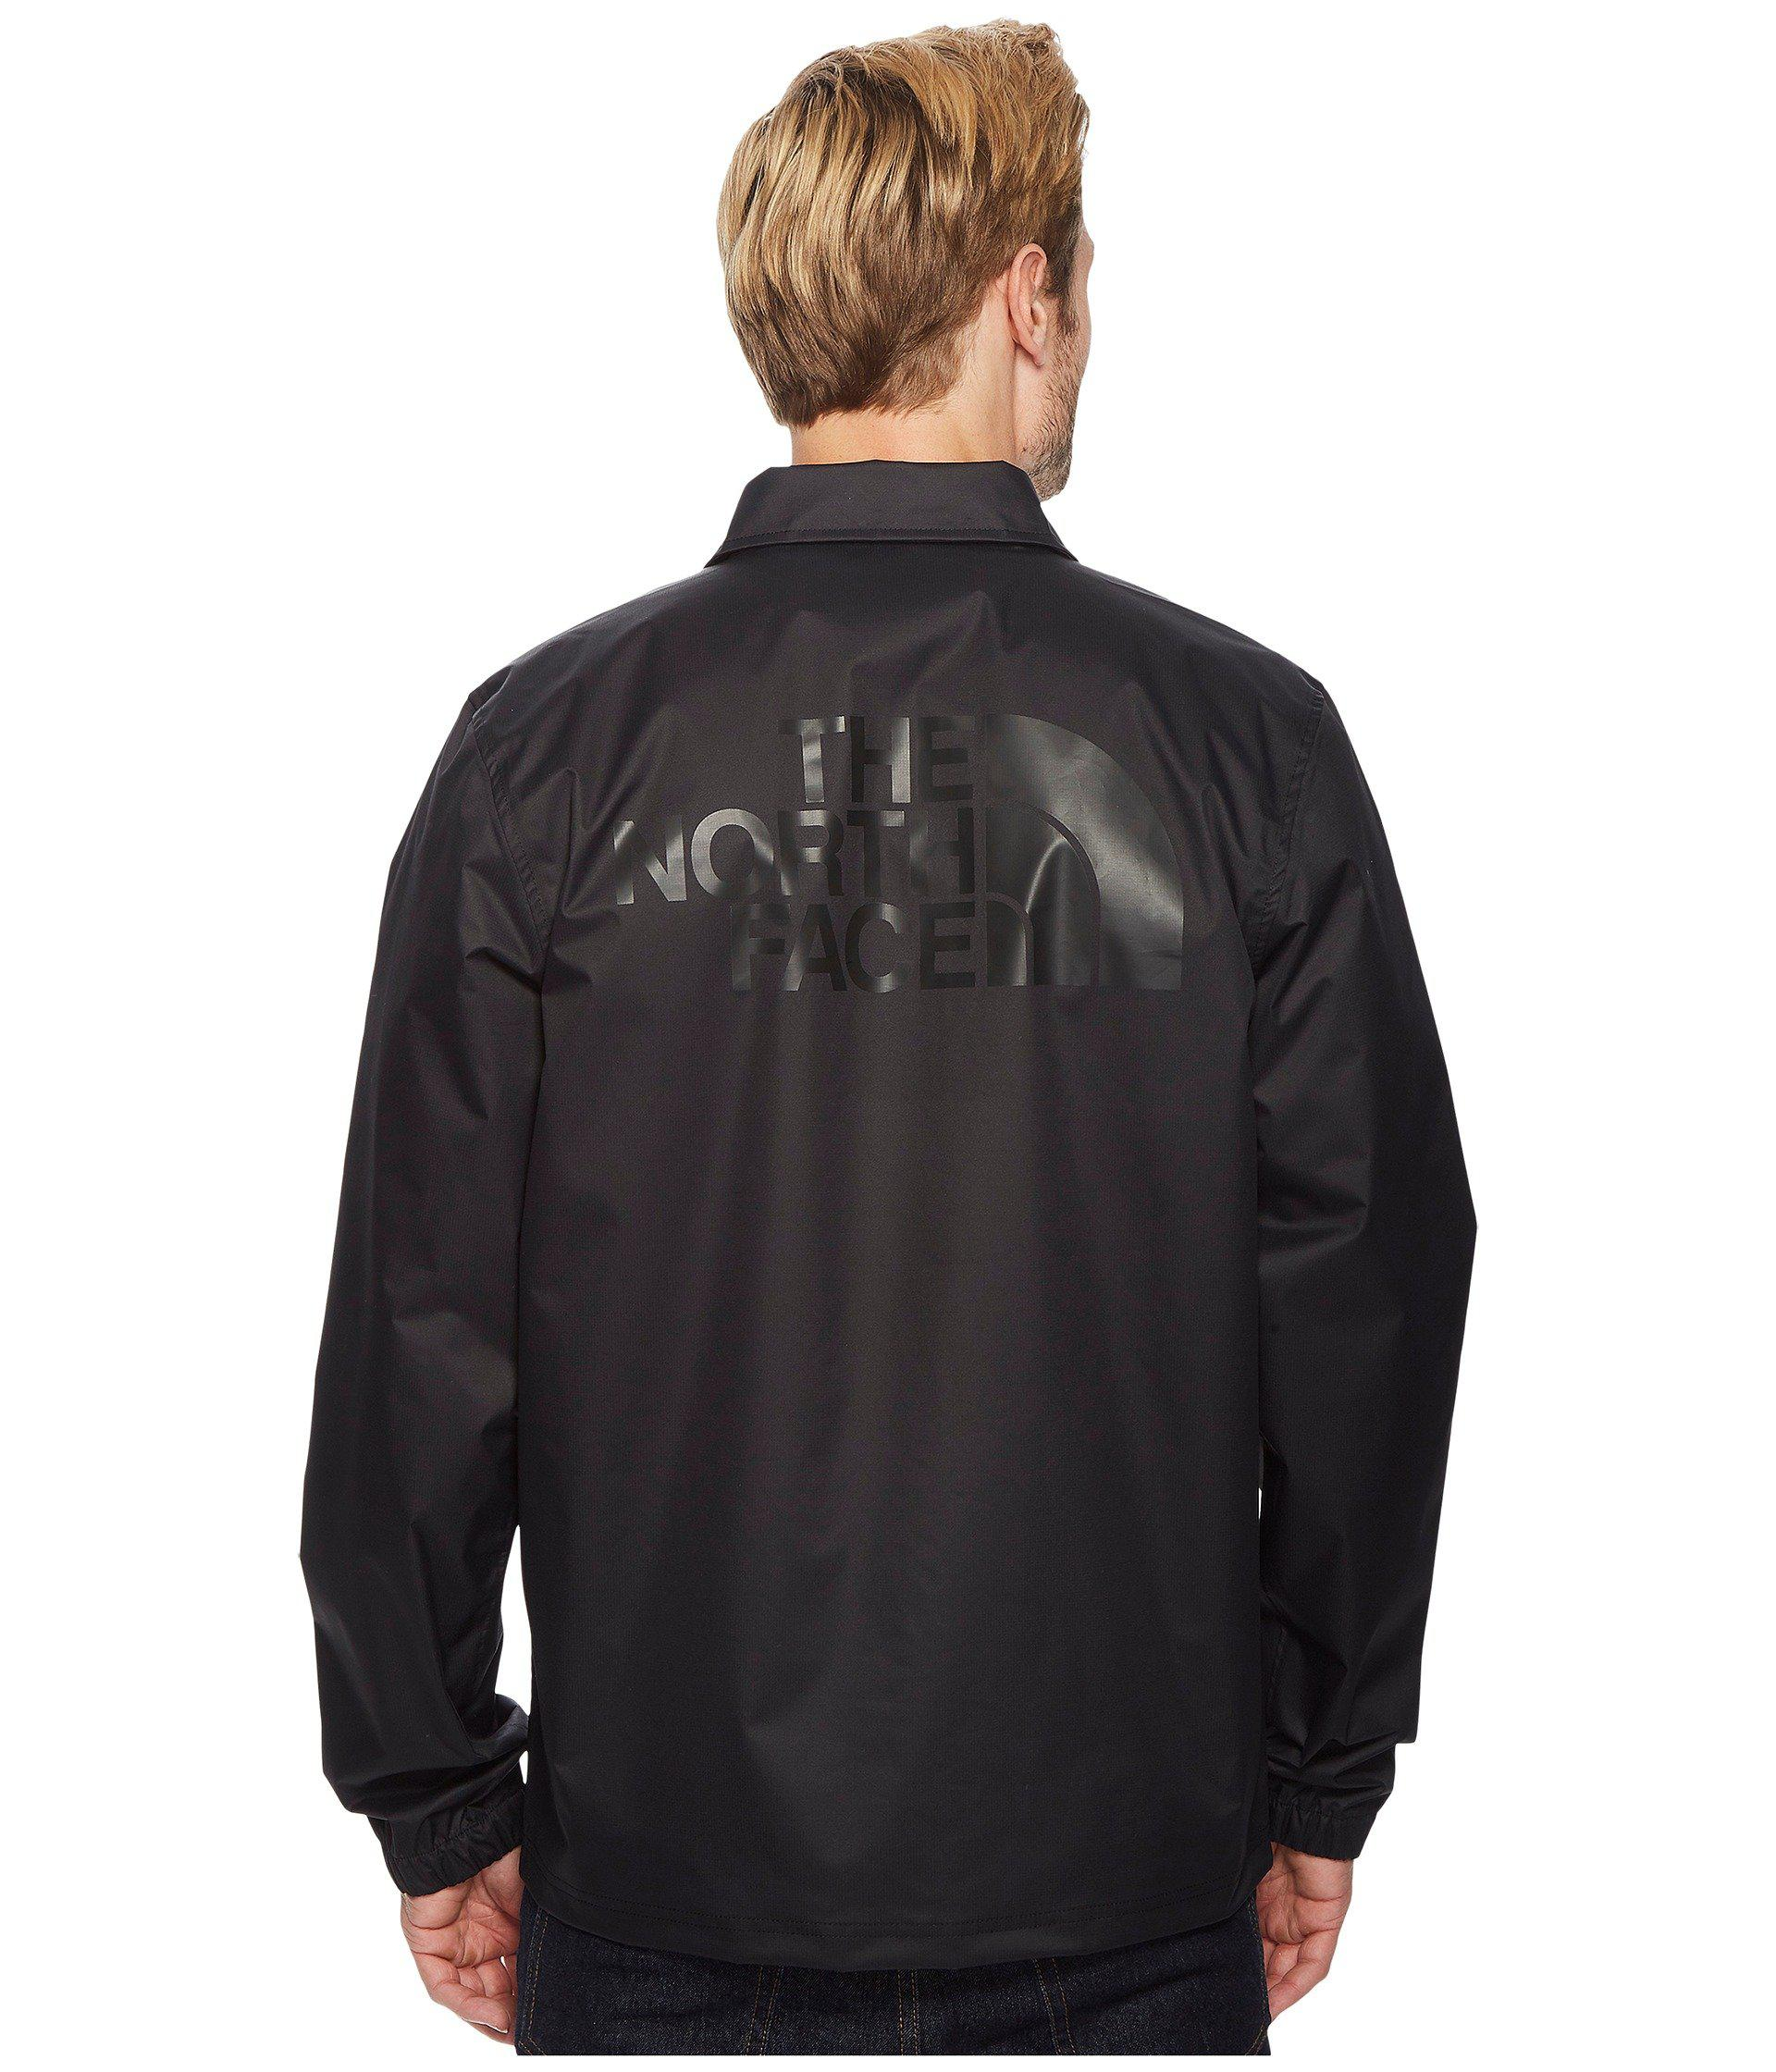 3c8629590b0f Lyst - The North Face Tnf Coaches Rain Jacket in Black for Men ...